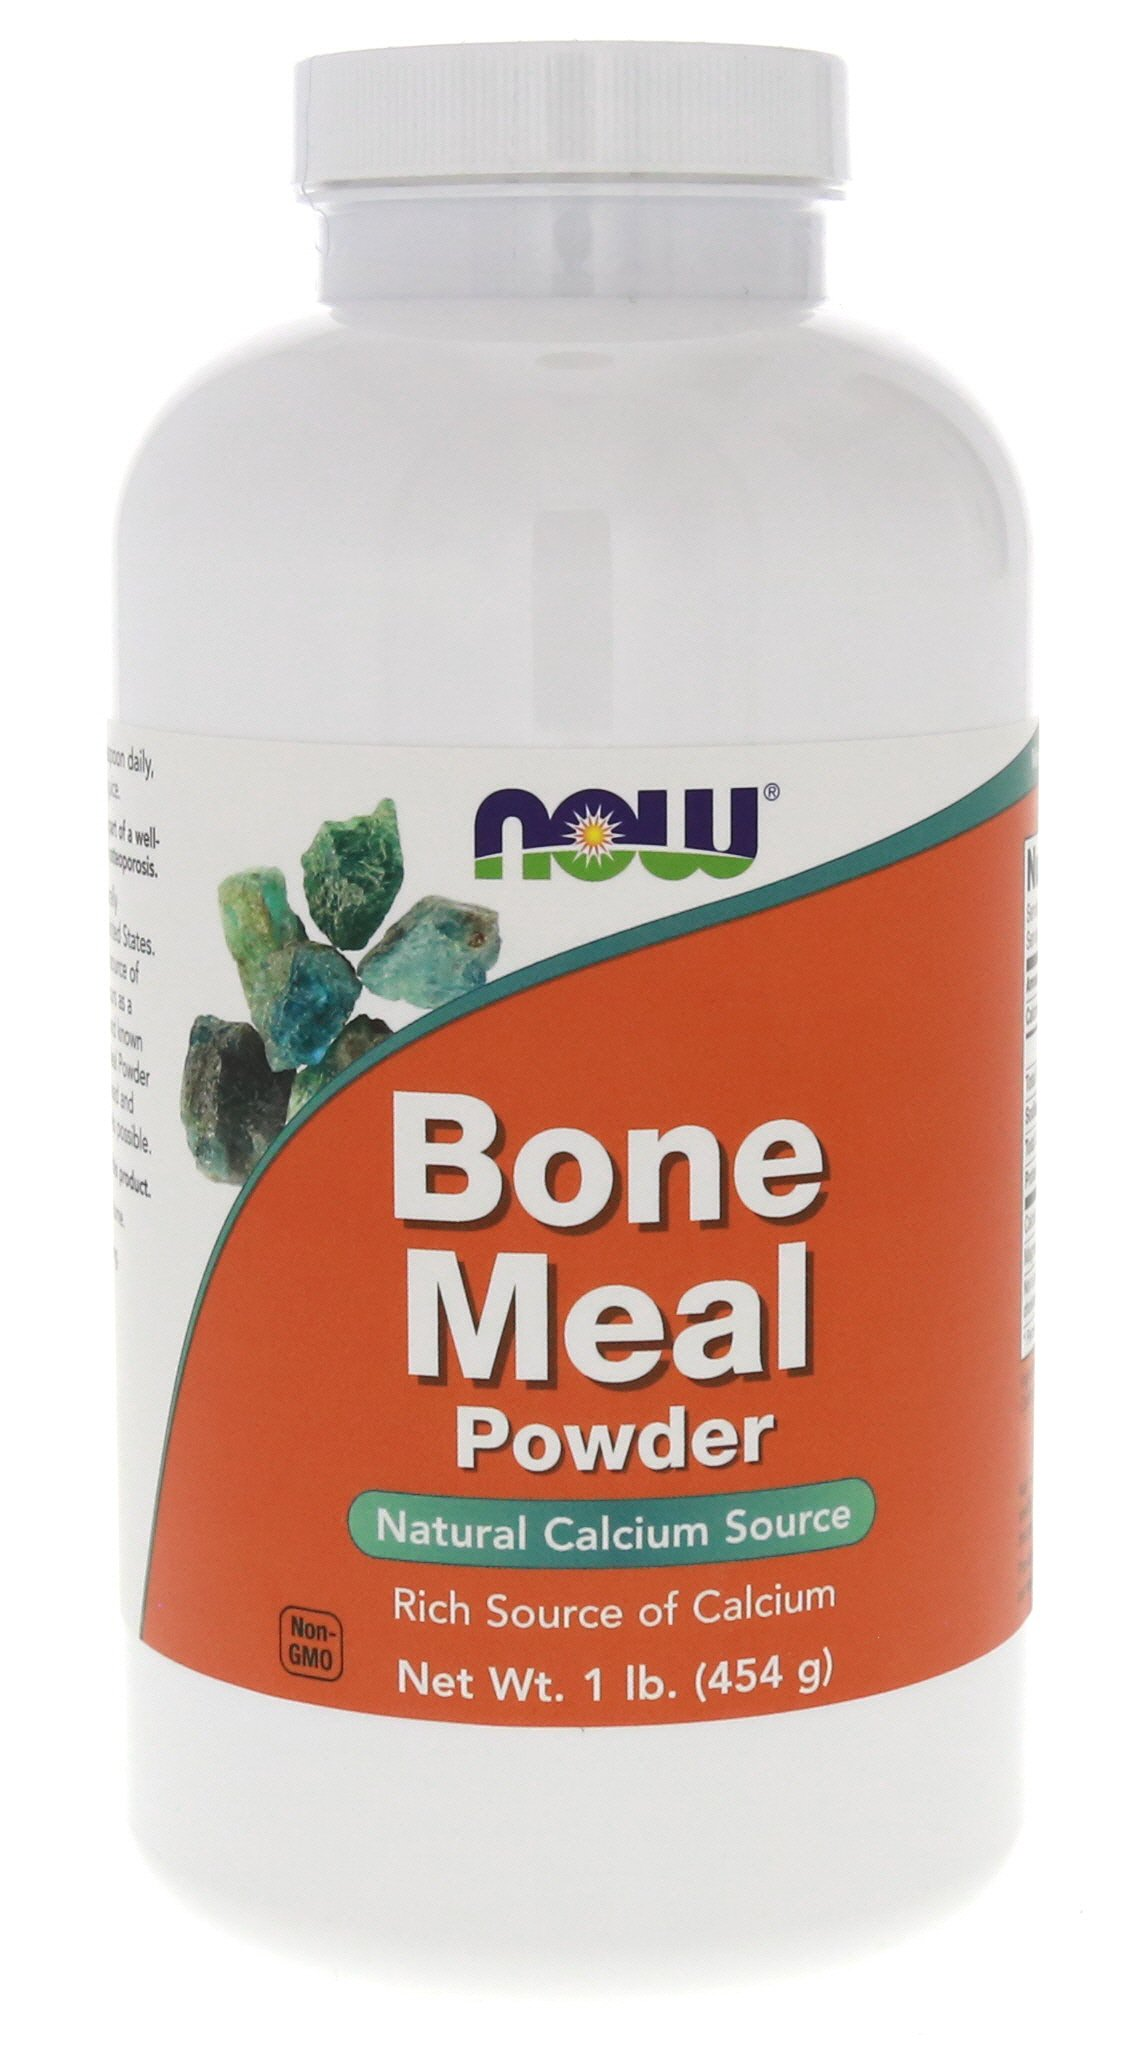 Bone meal powder for cats